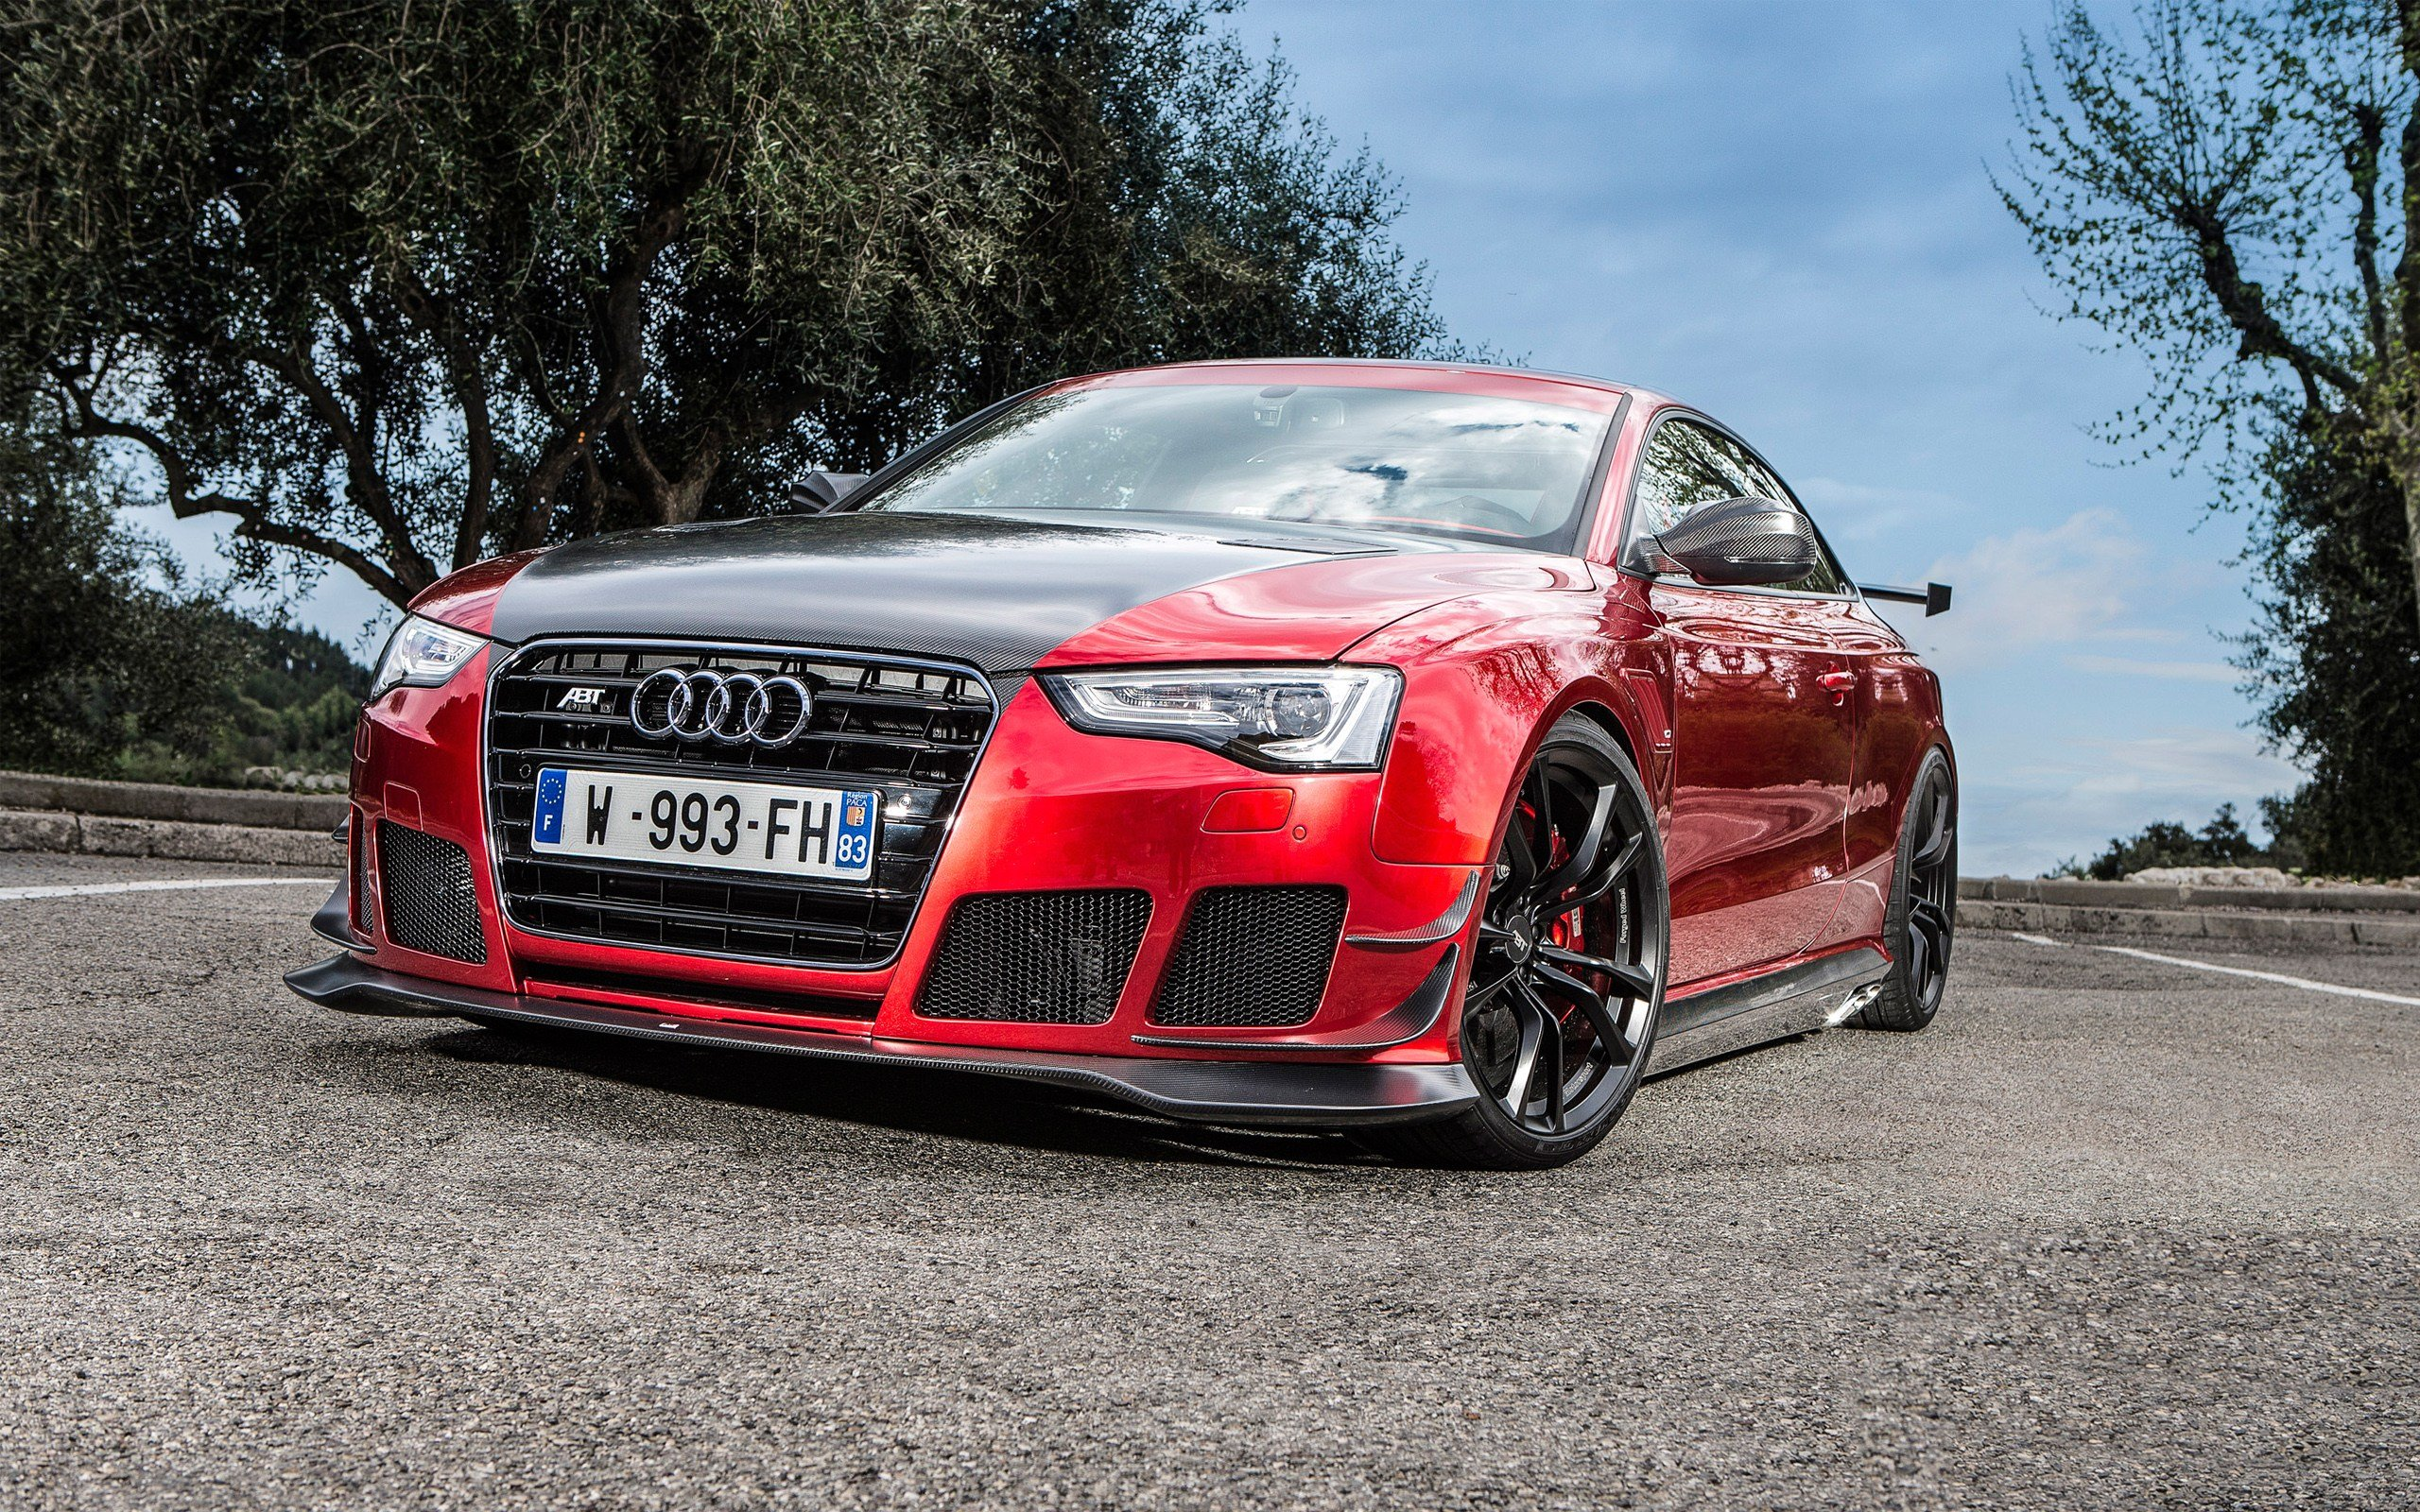 Latest Abt Audi Rs5 R Wallpaper Hd Car Wallpapers Id 5094 Free Download